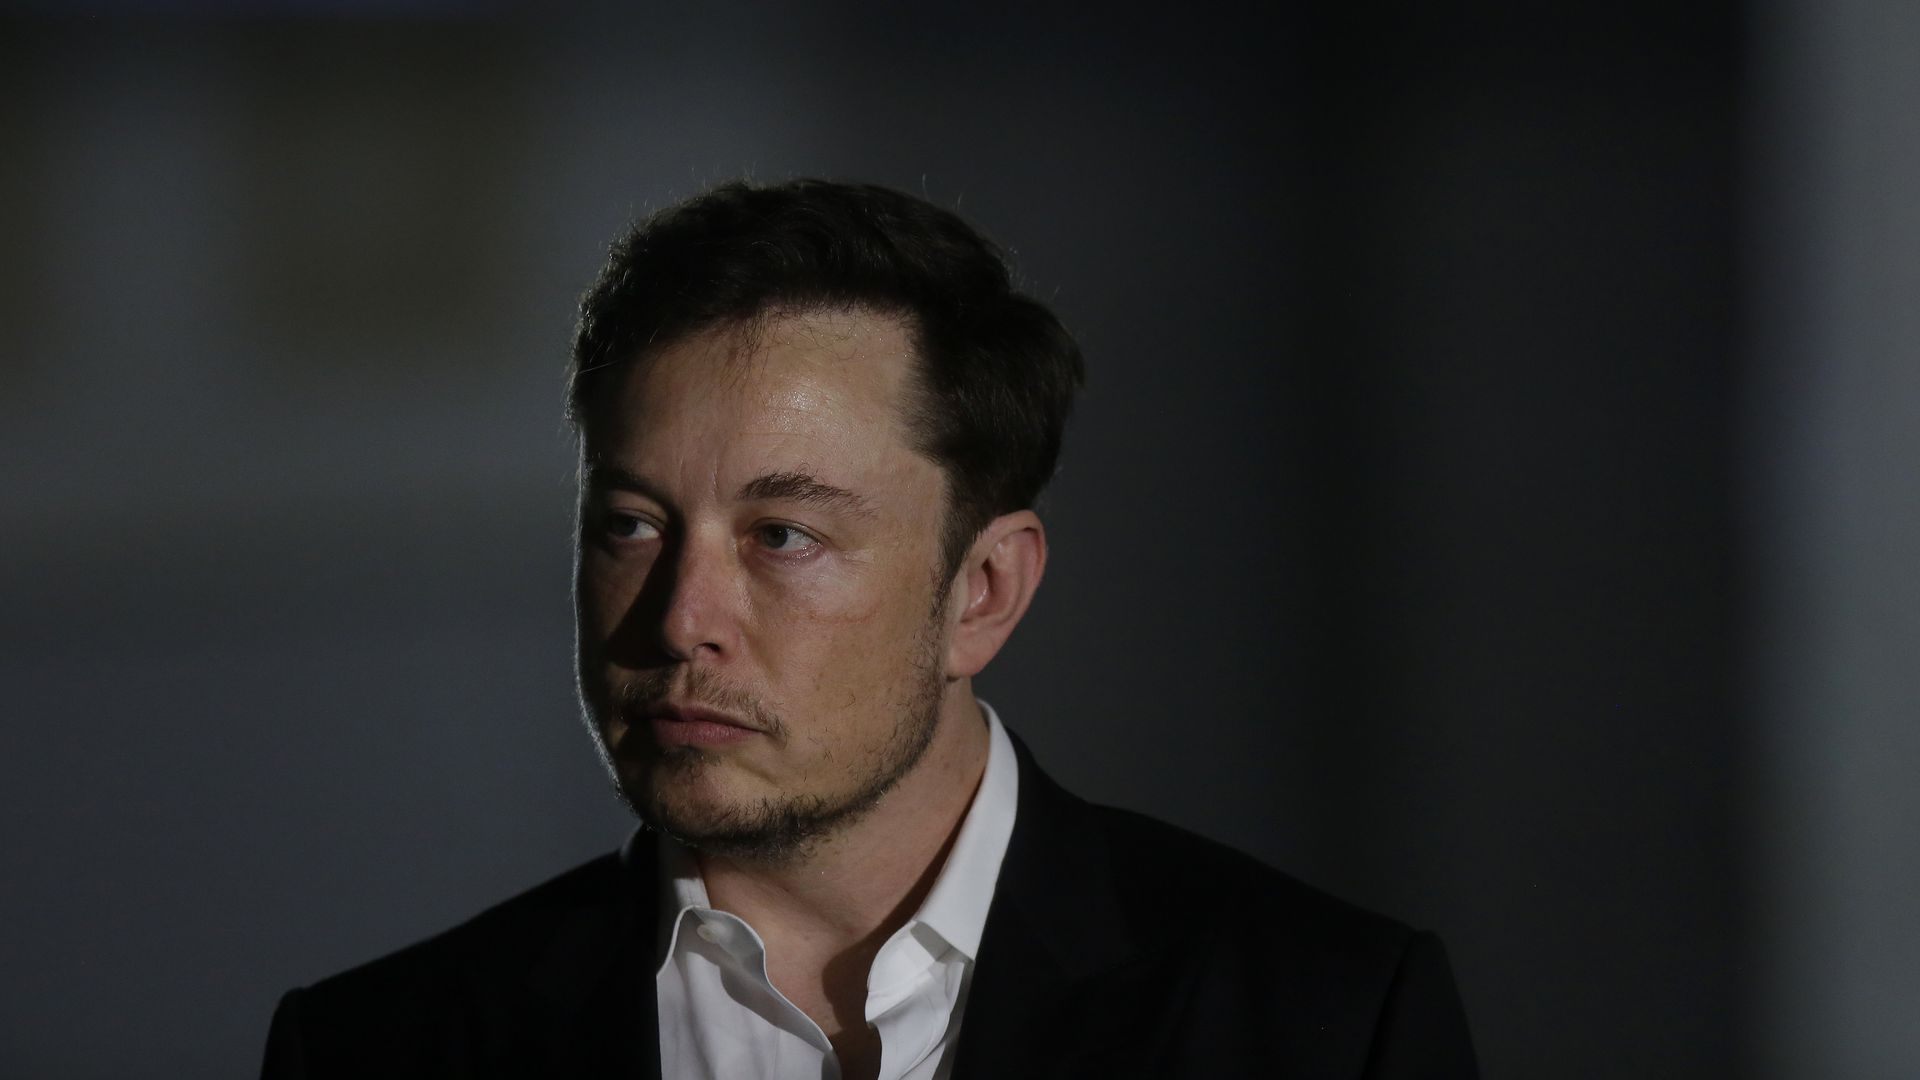 Close up of Elon Musk, who's wearing a serious expression